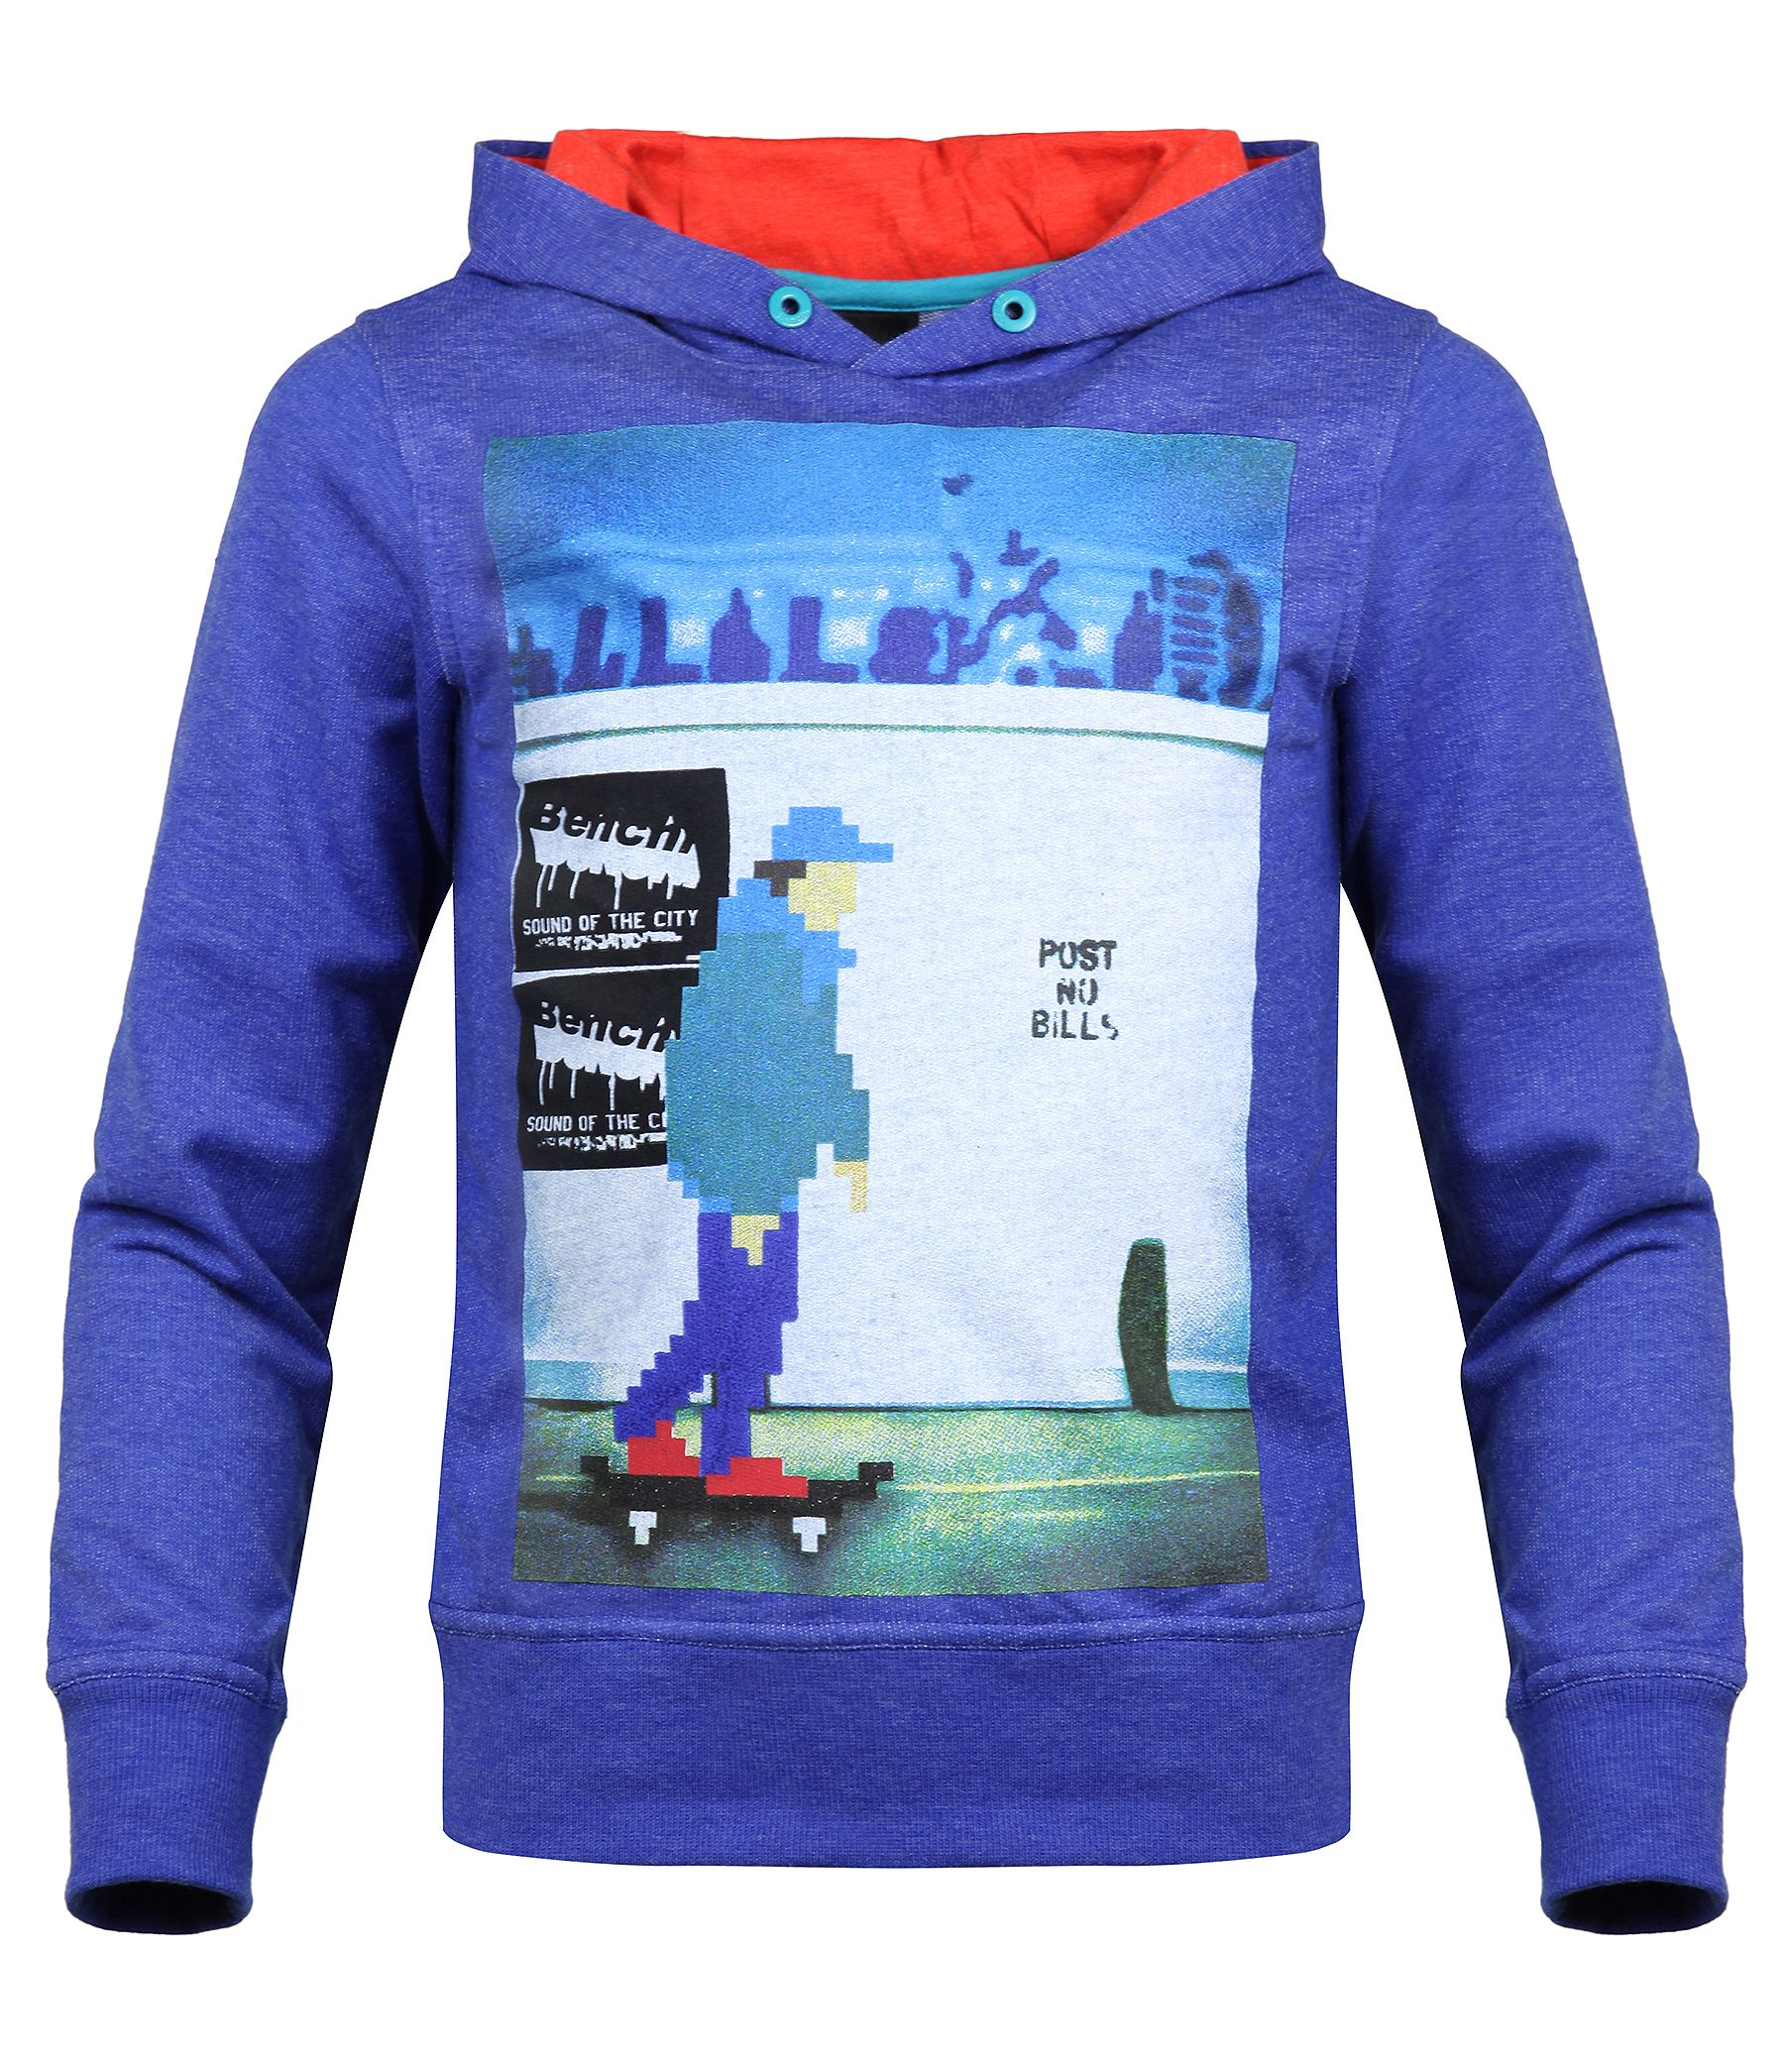 Boys hooper hooded graphic sweatshirt